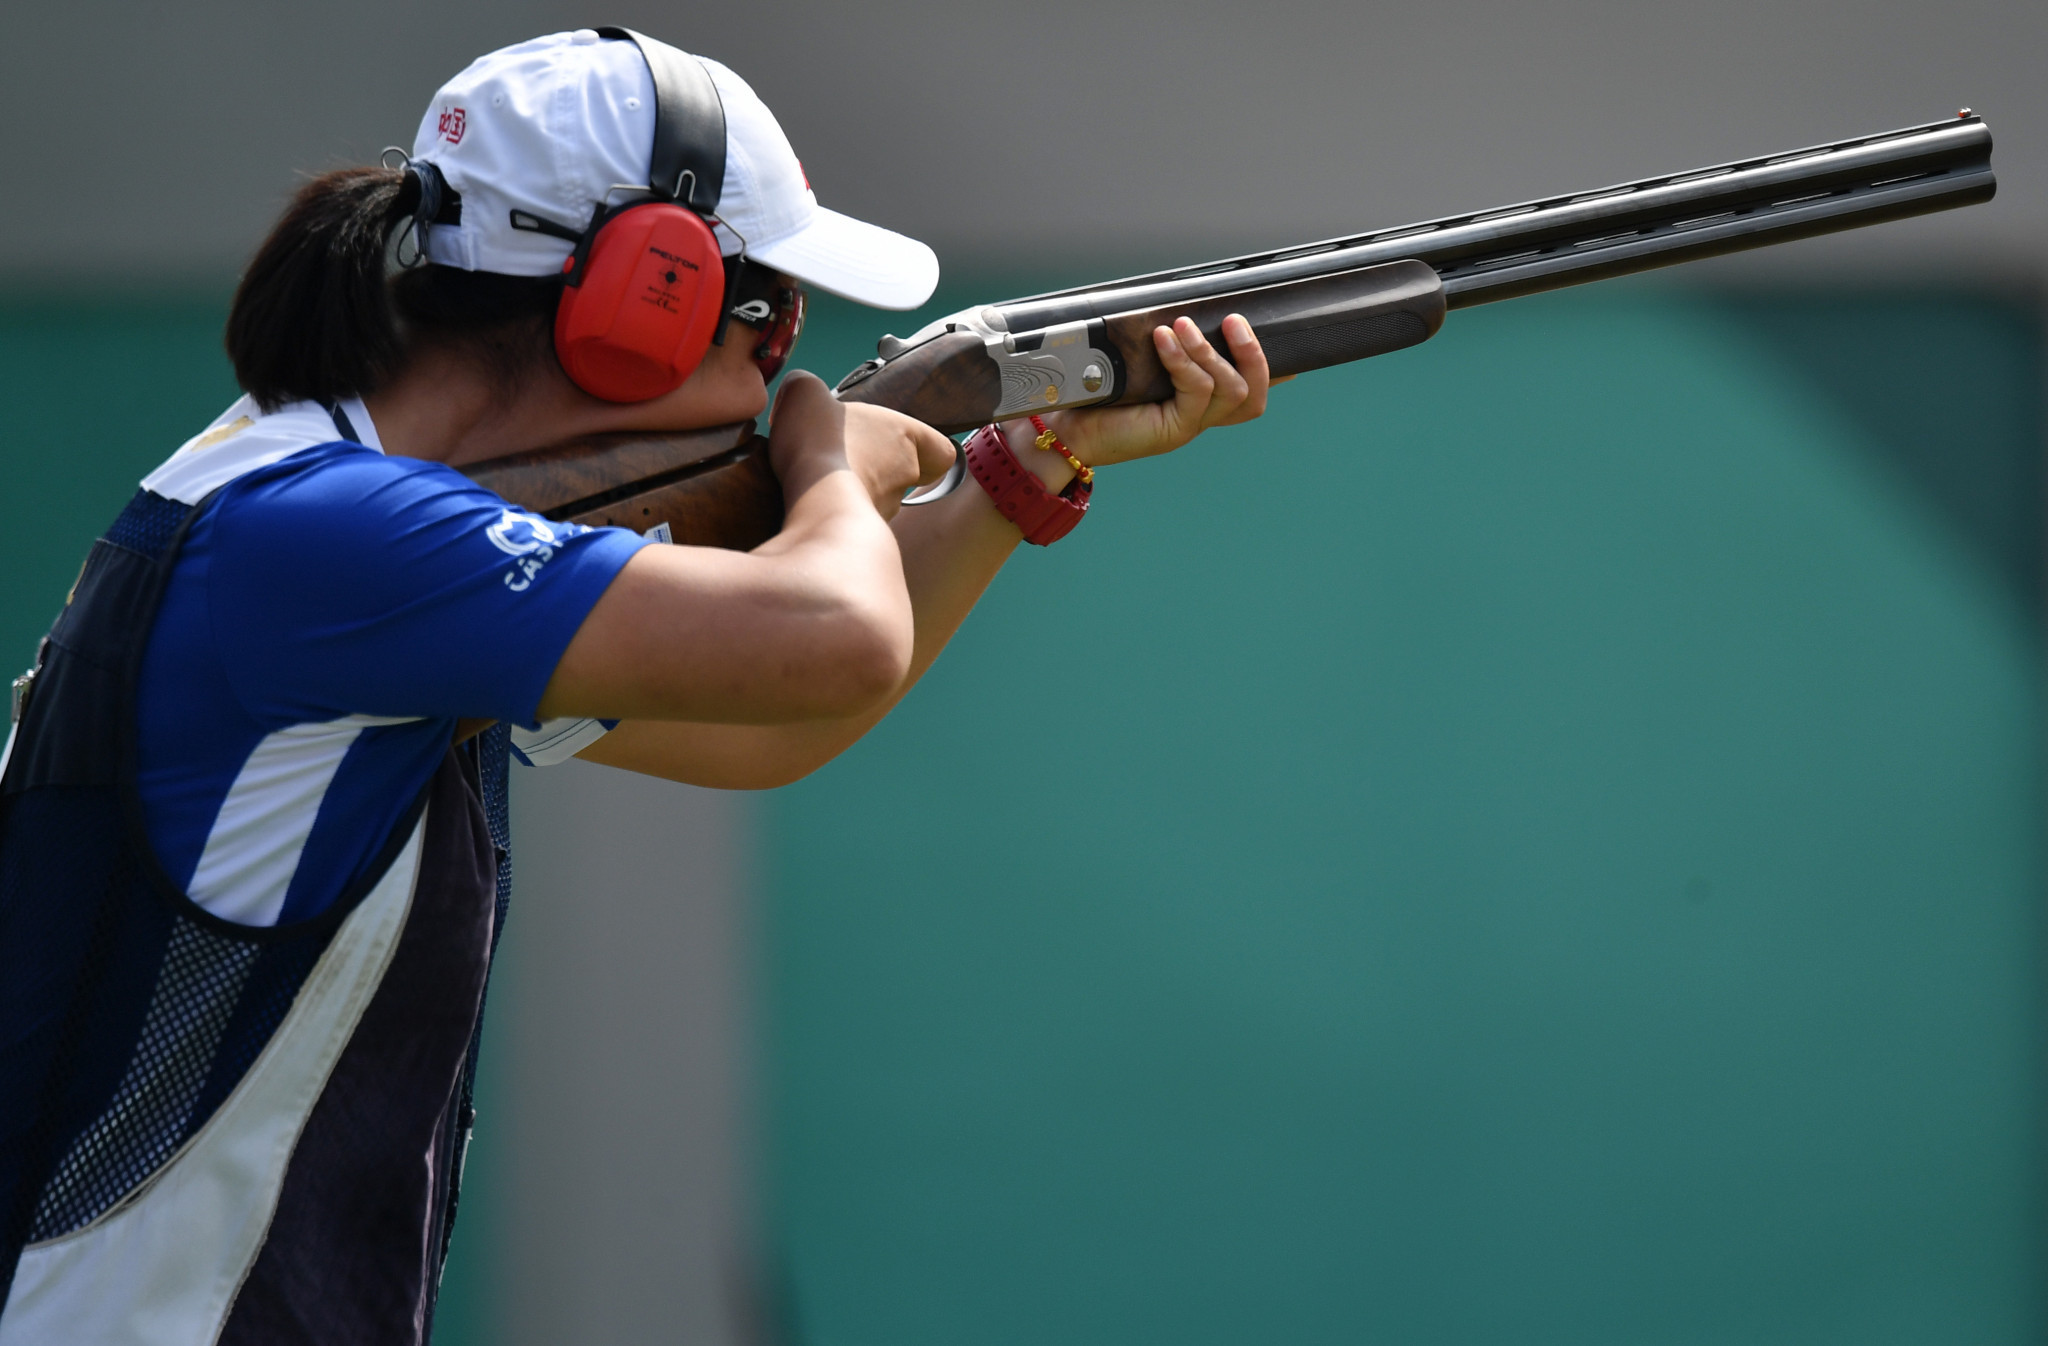 China's Zhang Xinqiu equalled the Asian record on her way to winning the women's trap shooting competition ©Getty Images